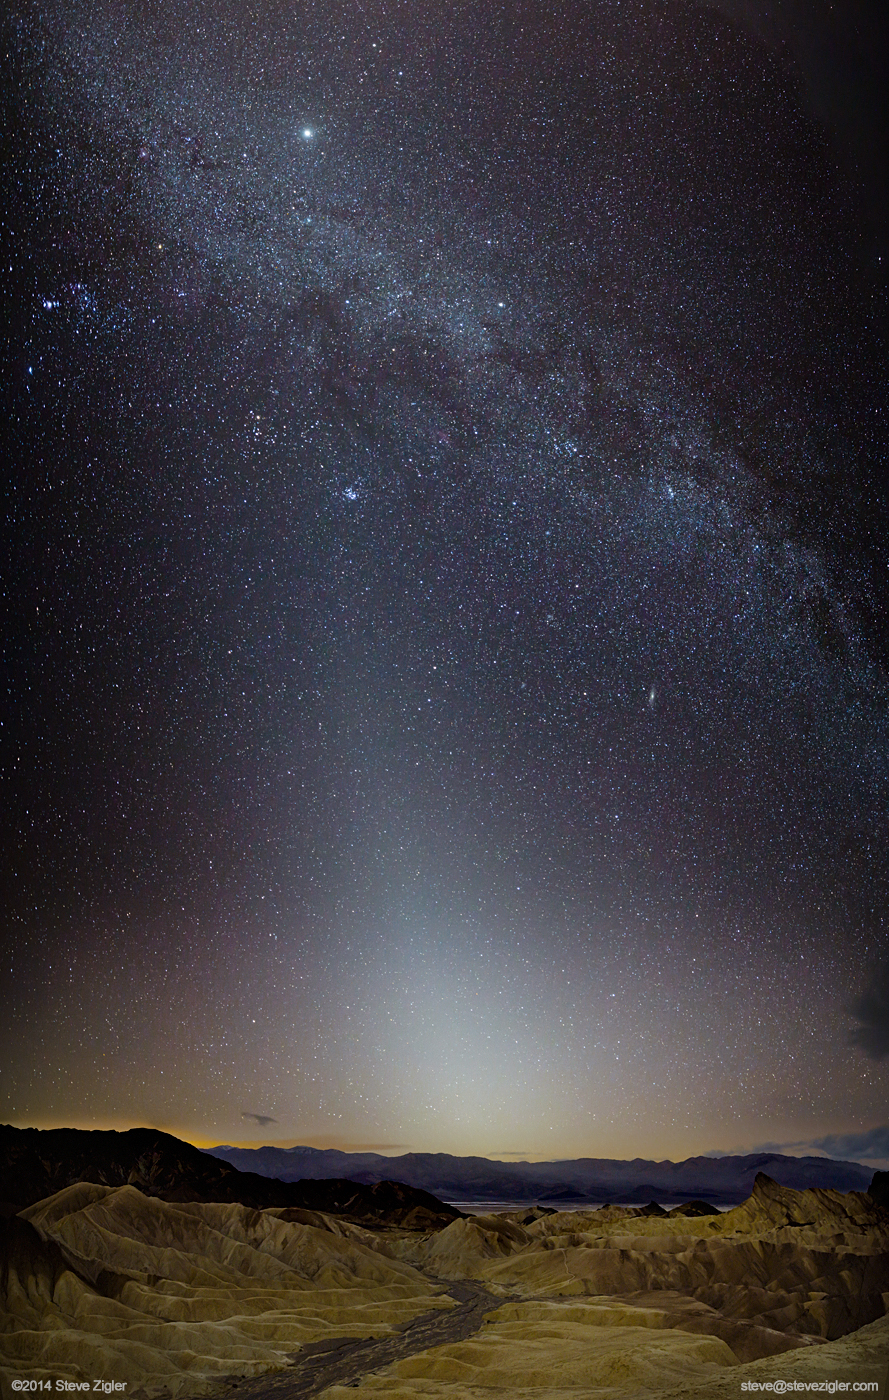 Zodiacal Light Glows Over Death Valley (Photo)